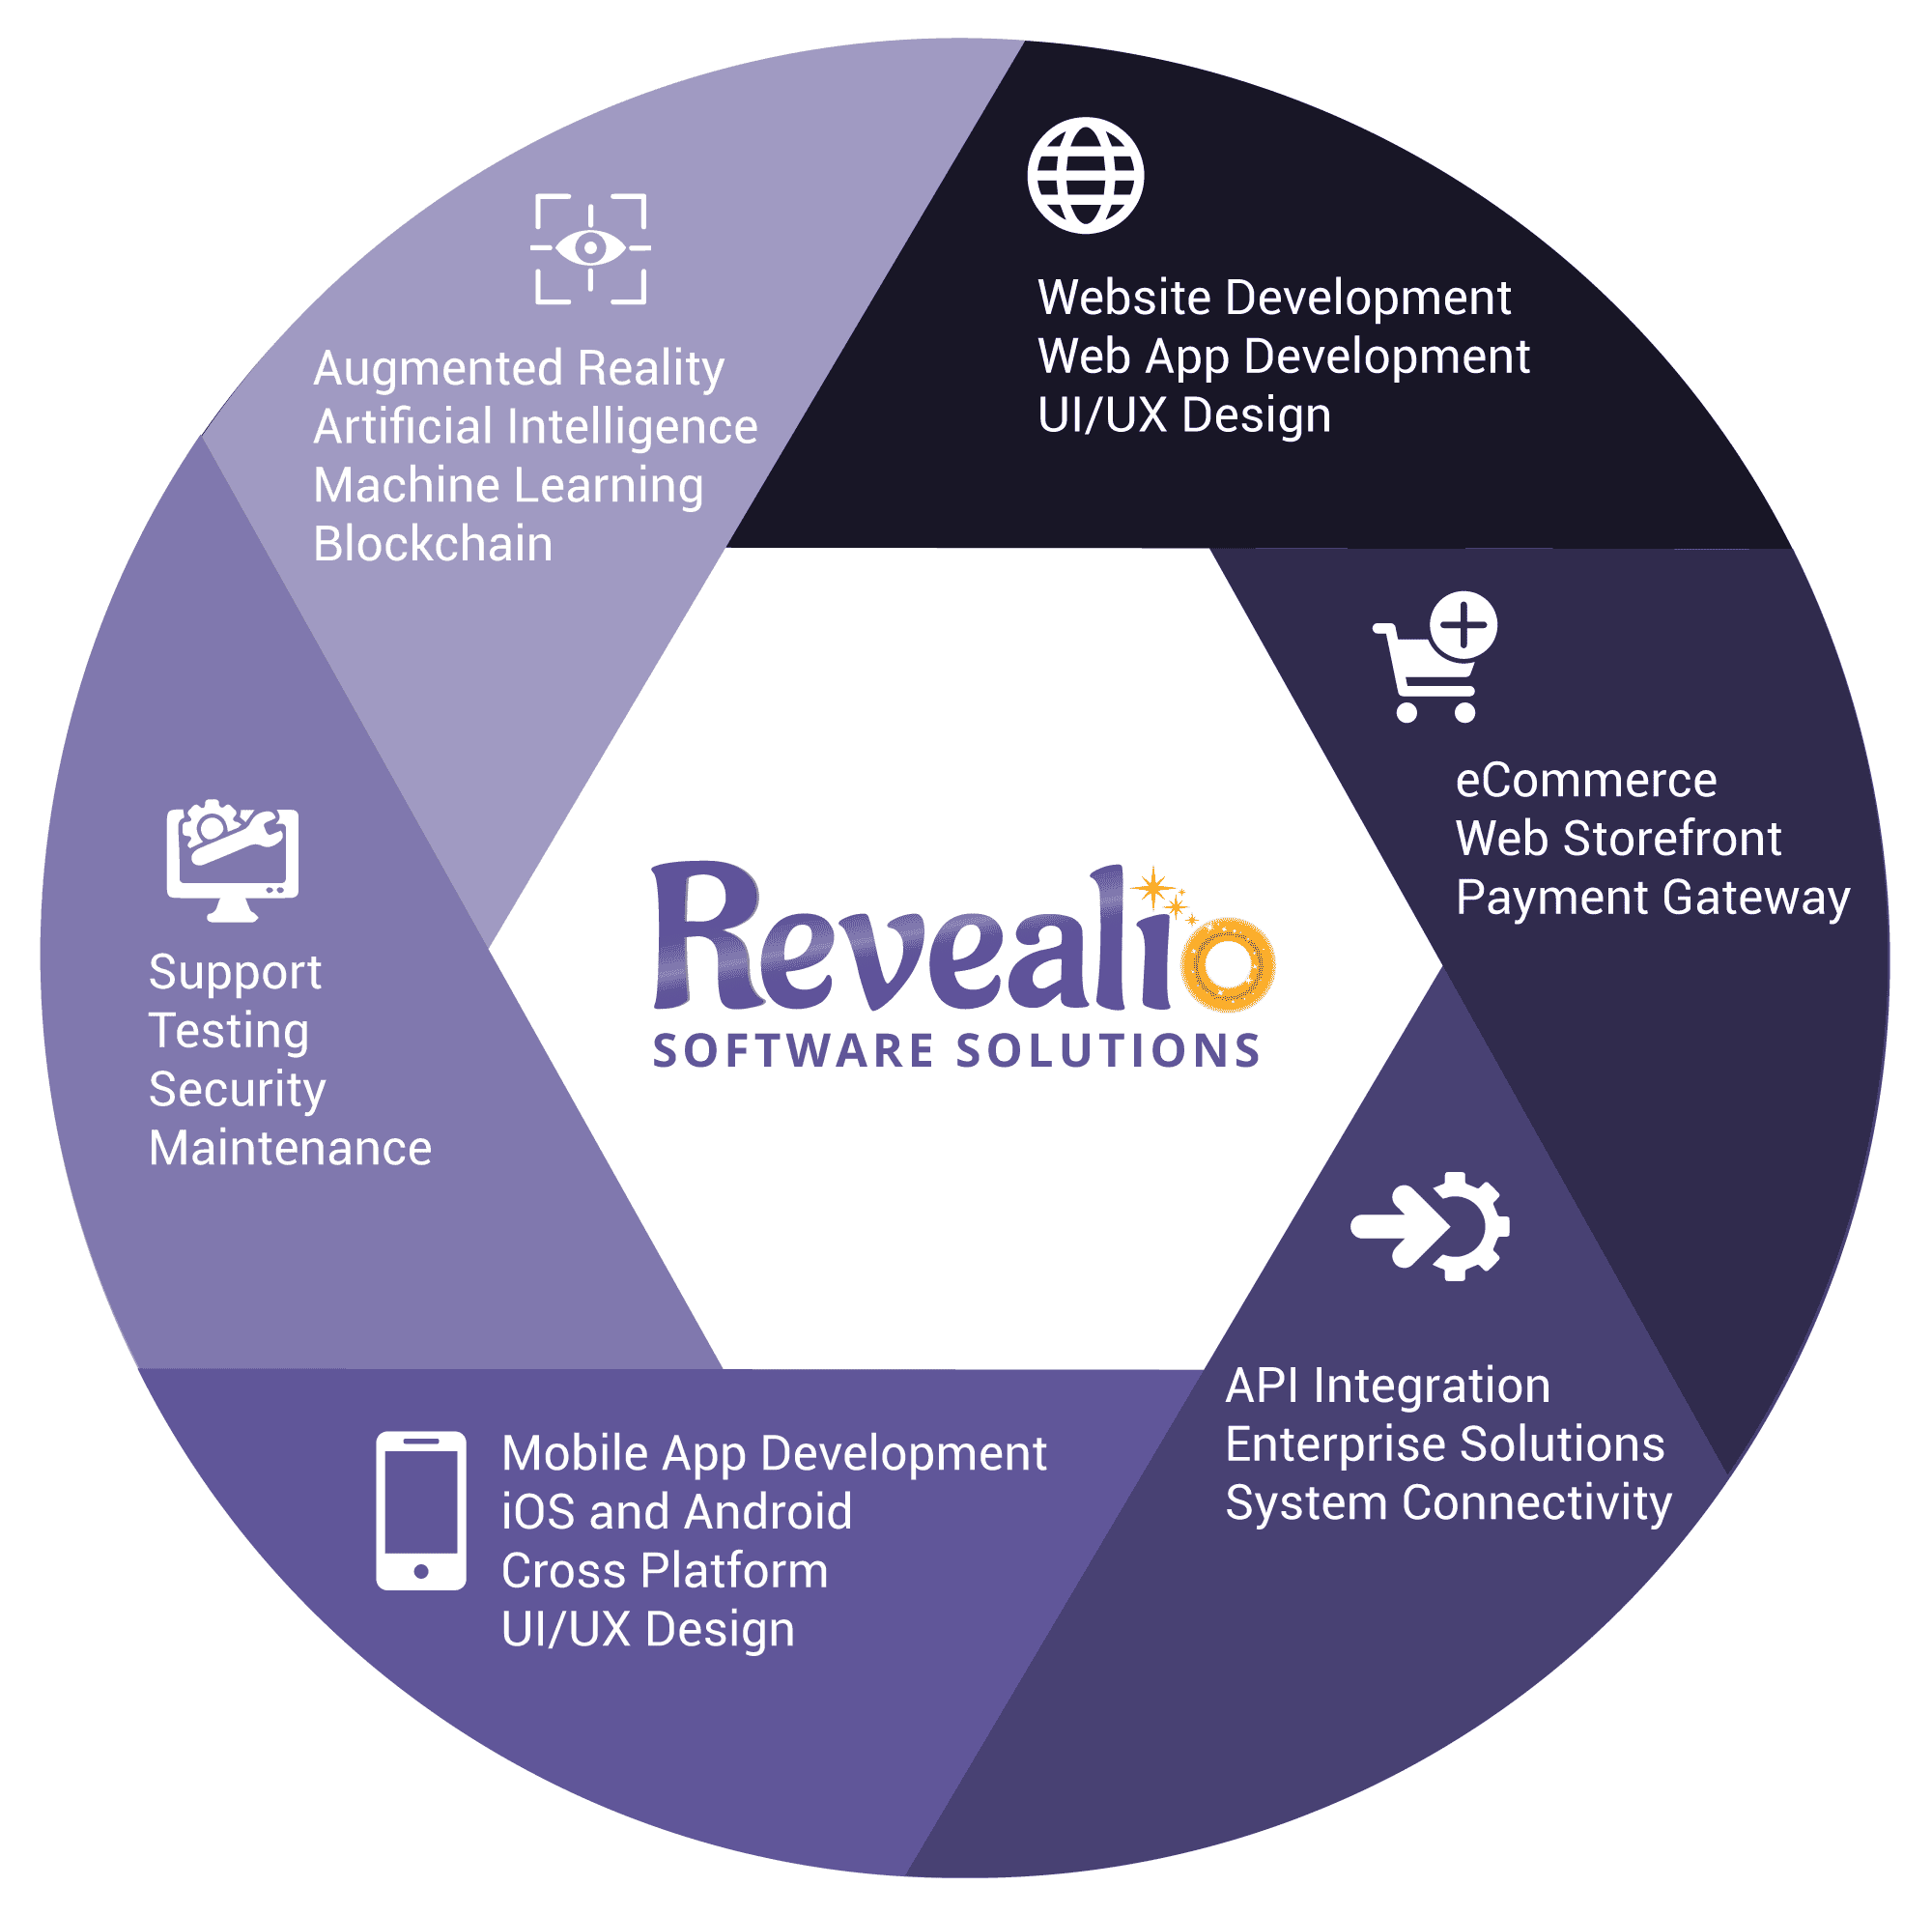 REVEALiO-Software-Services-Circle